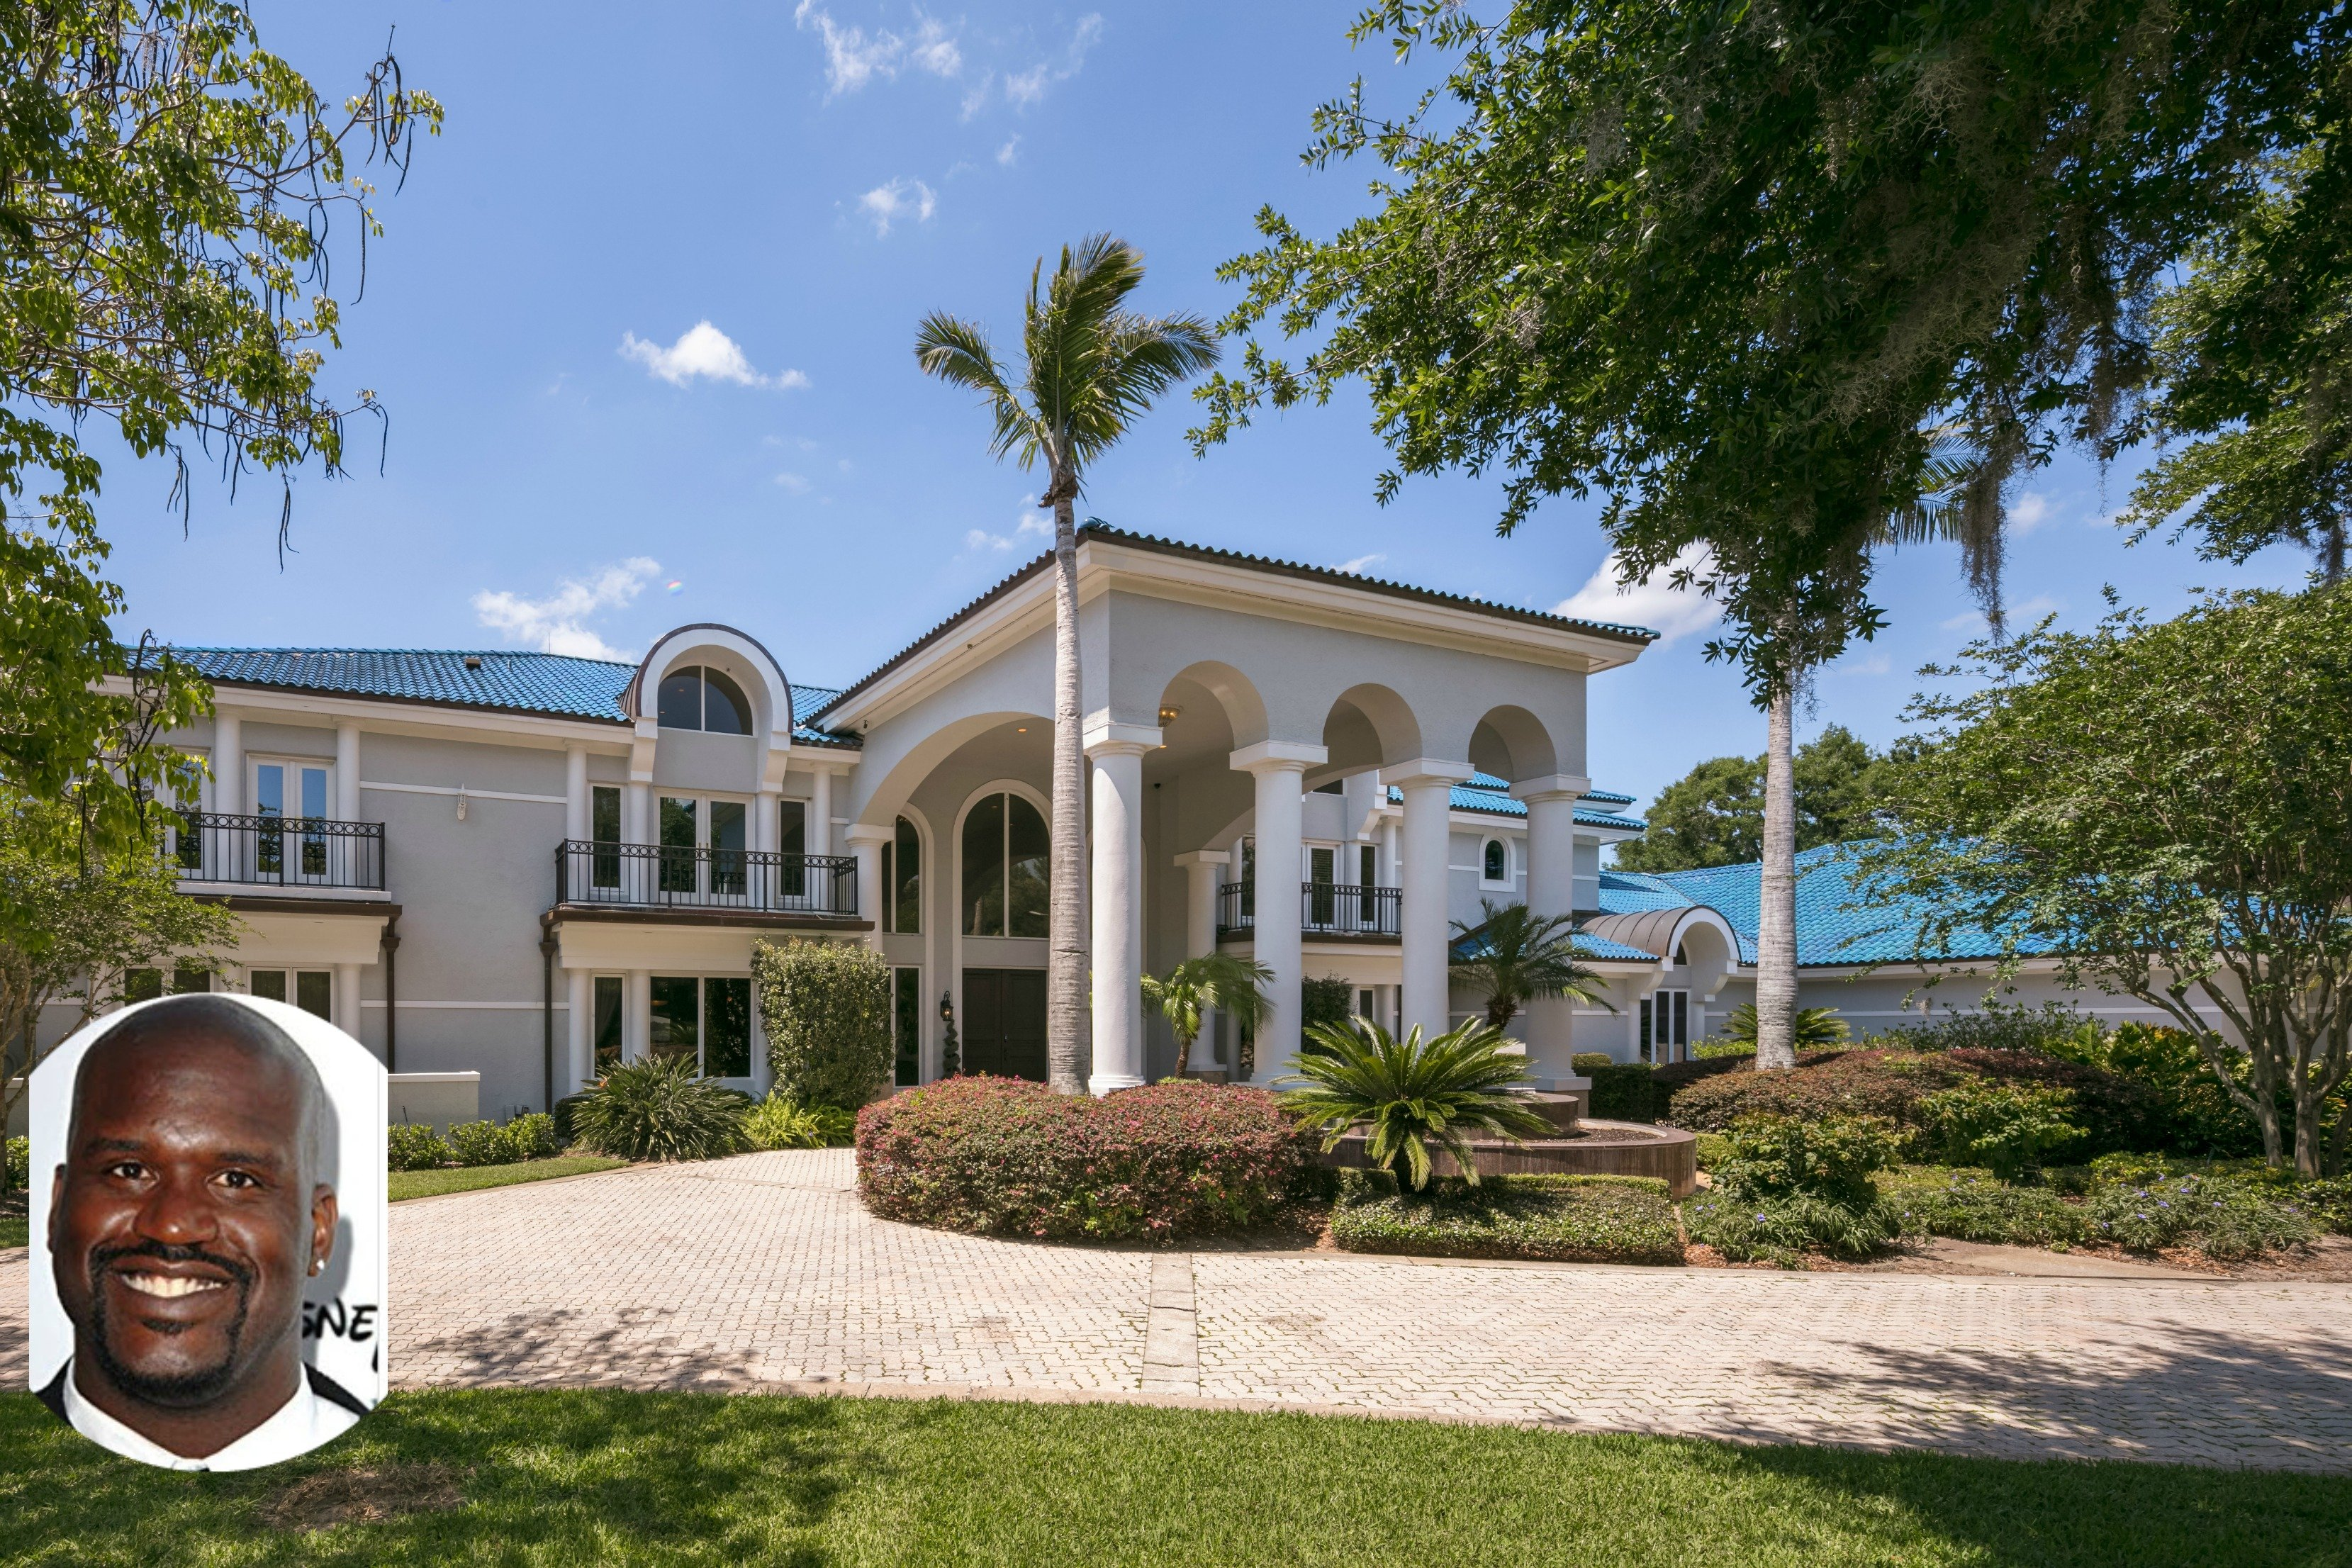 Shaquille O'Neal Florida Mansion For Sale is a must-see